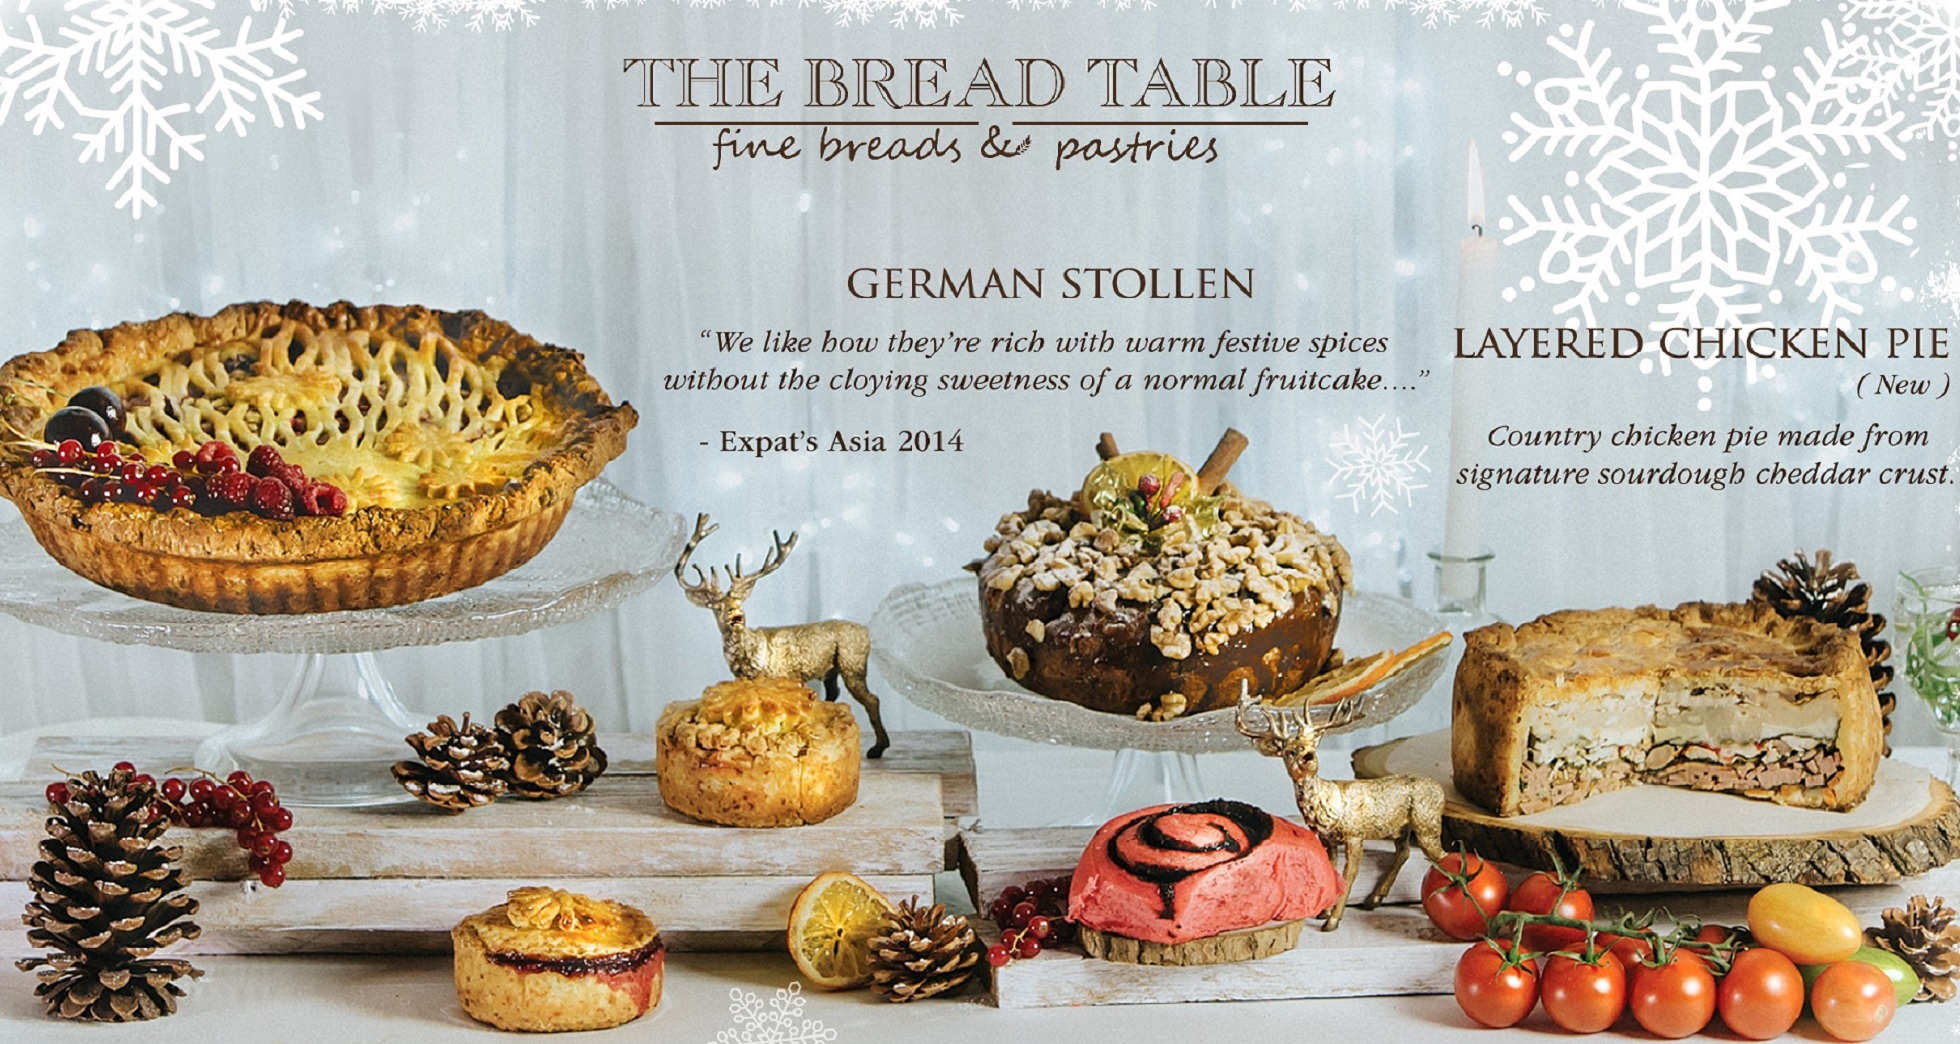 The Bread Table - Christmas Pies and Stollens Banner Image